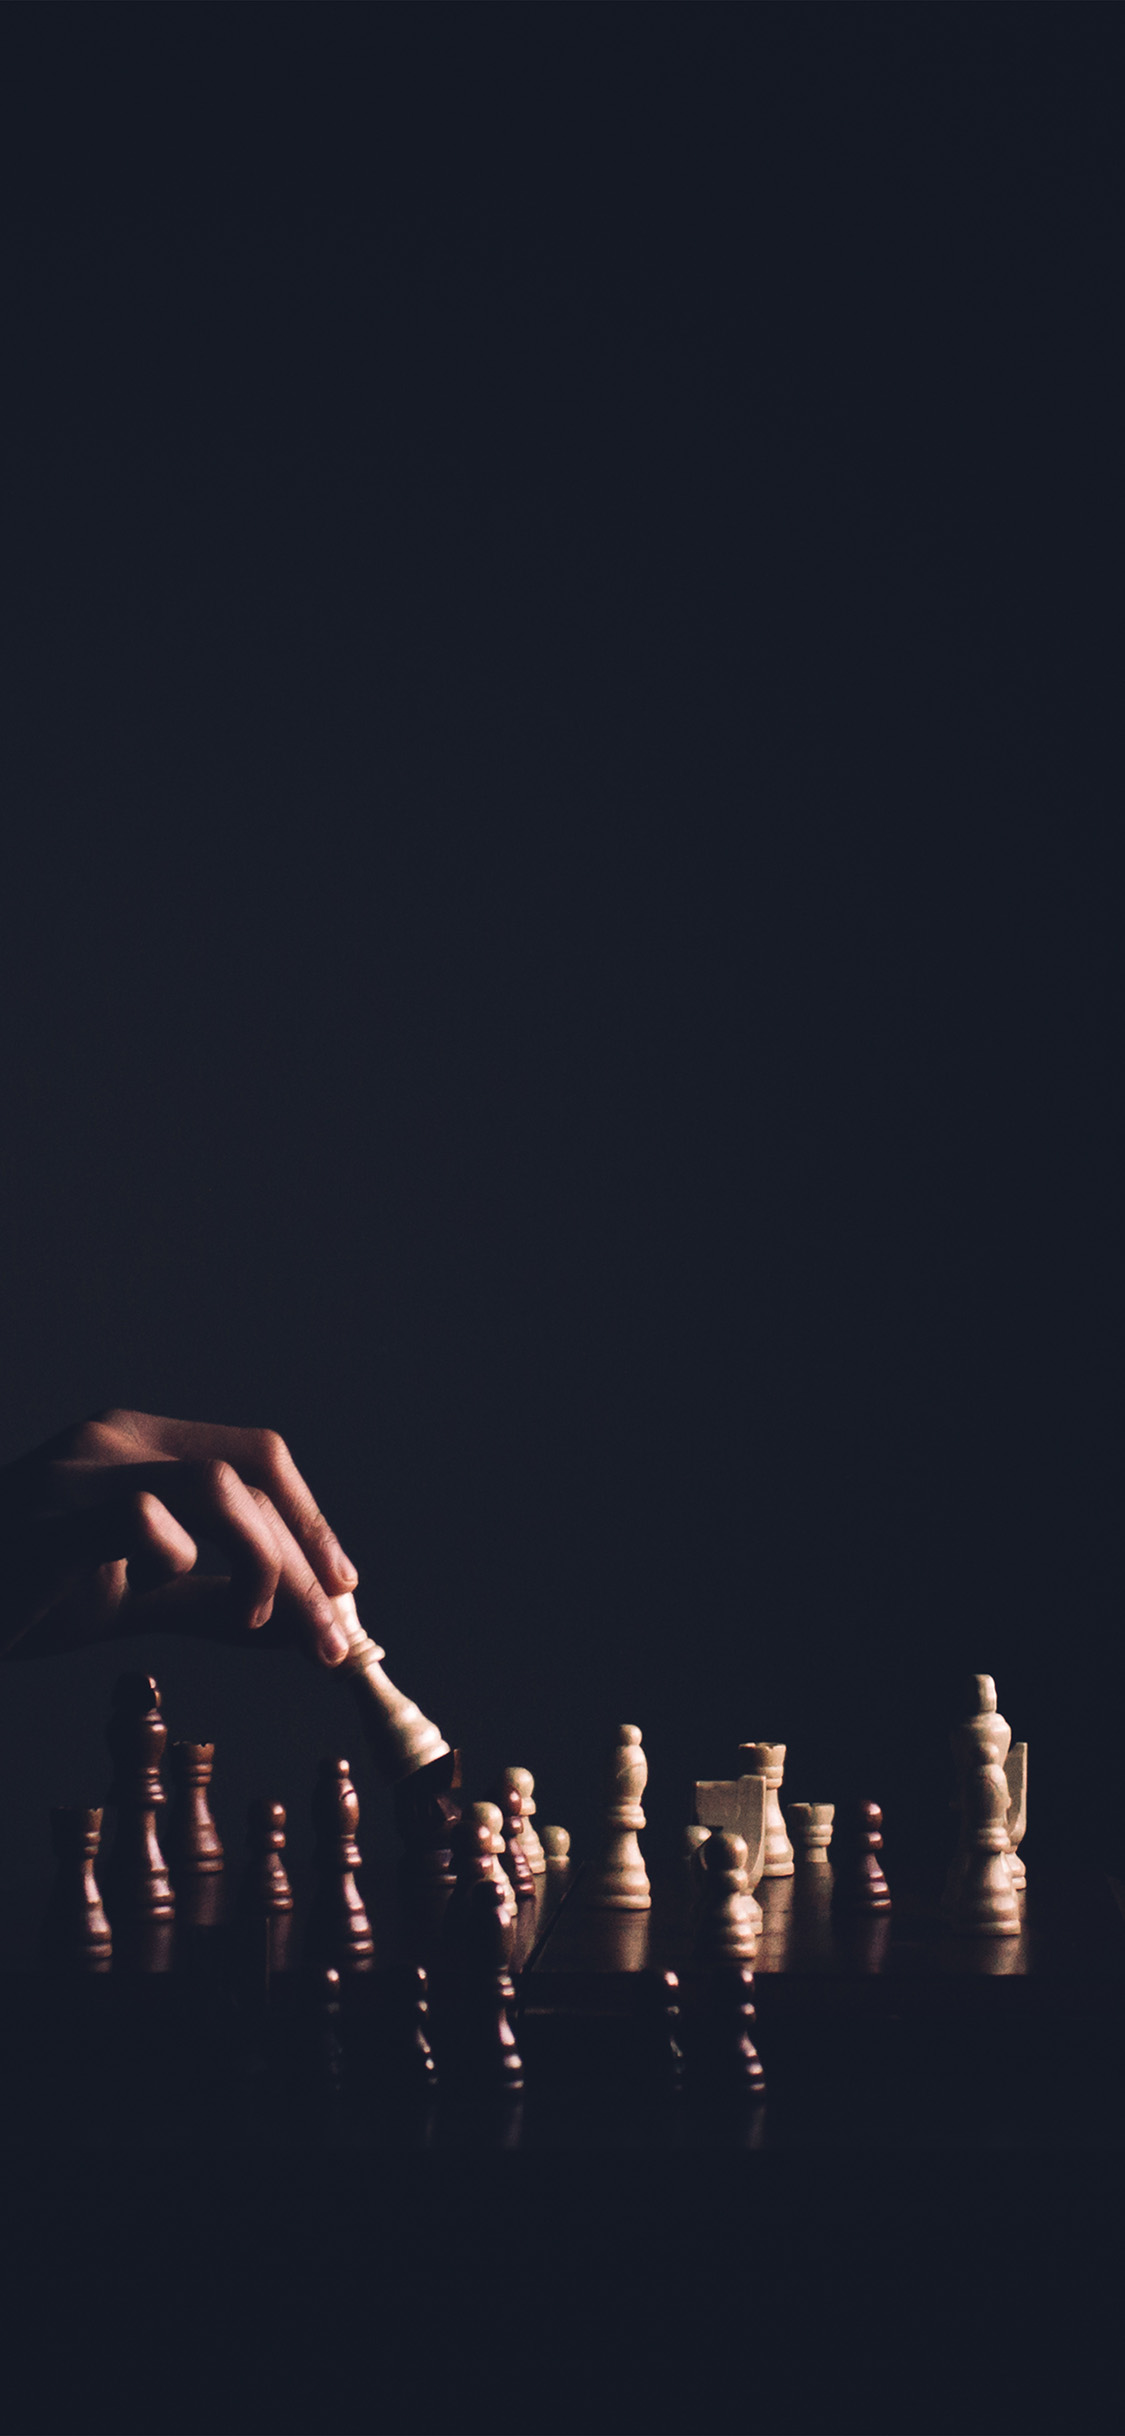 iPhonexpapers.com-Apple-iPhone-wallpaper-nv56-chess-dark-game-nature